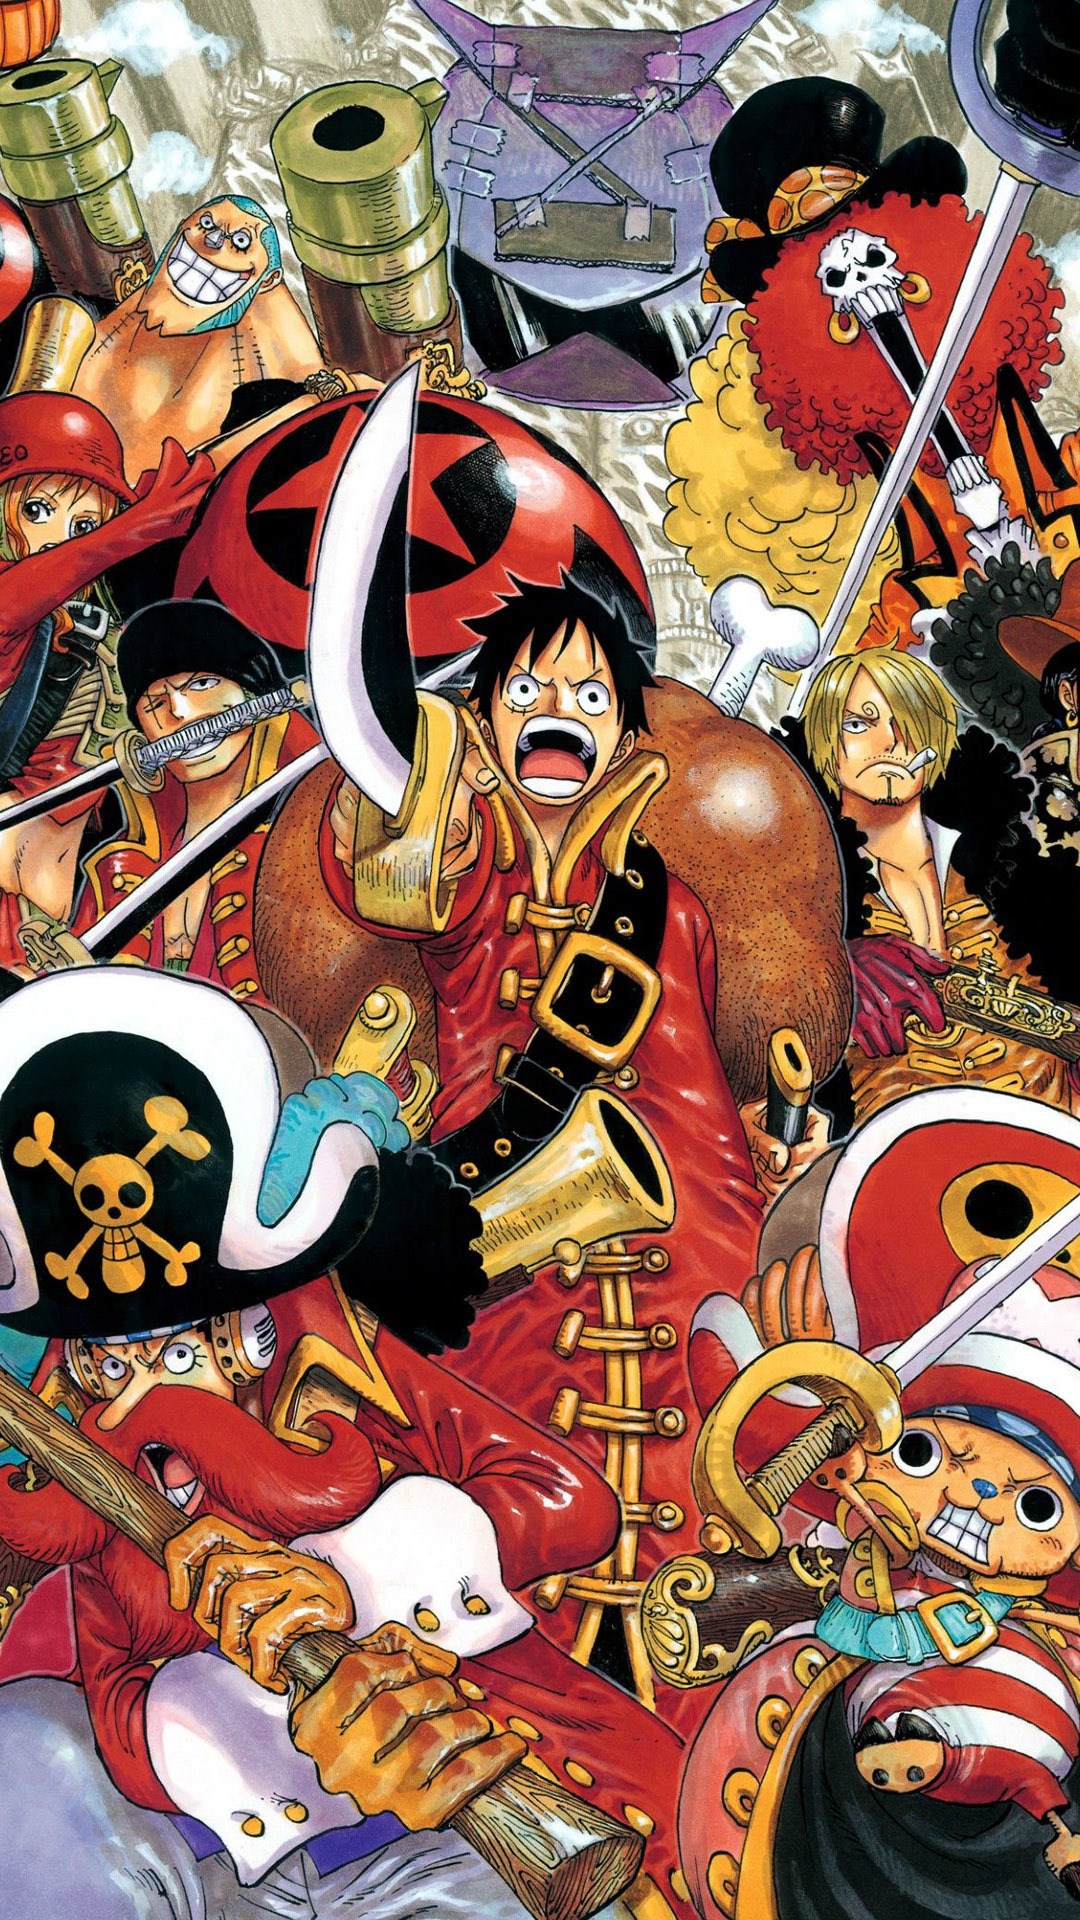 Download One Piece Mobile Wallpaper Gallery